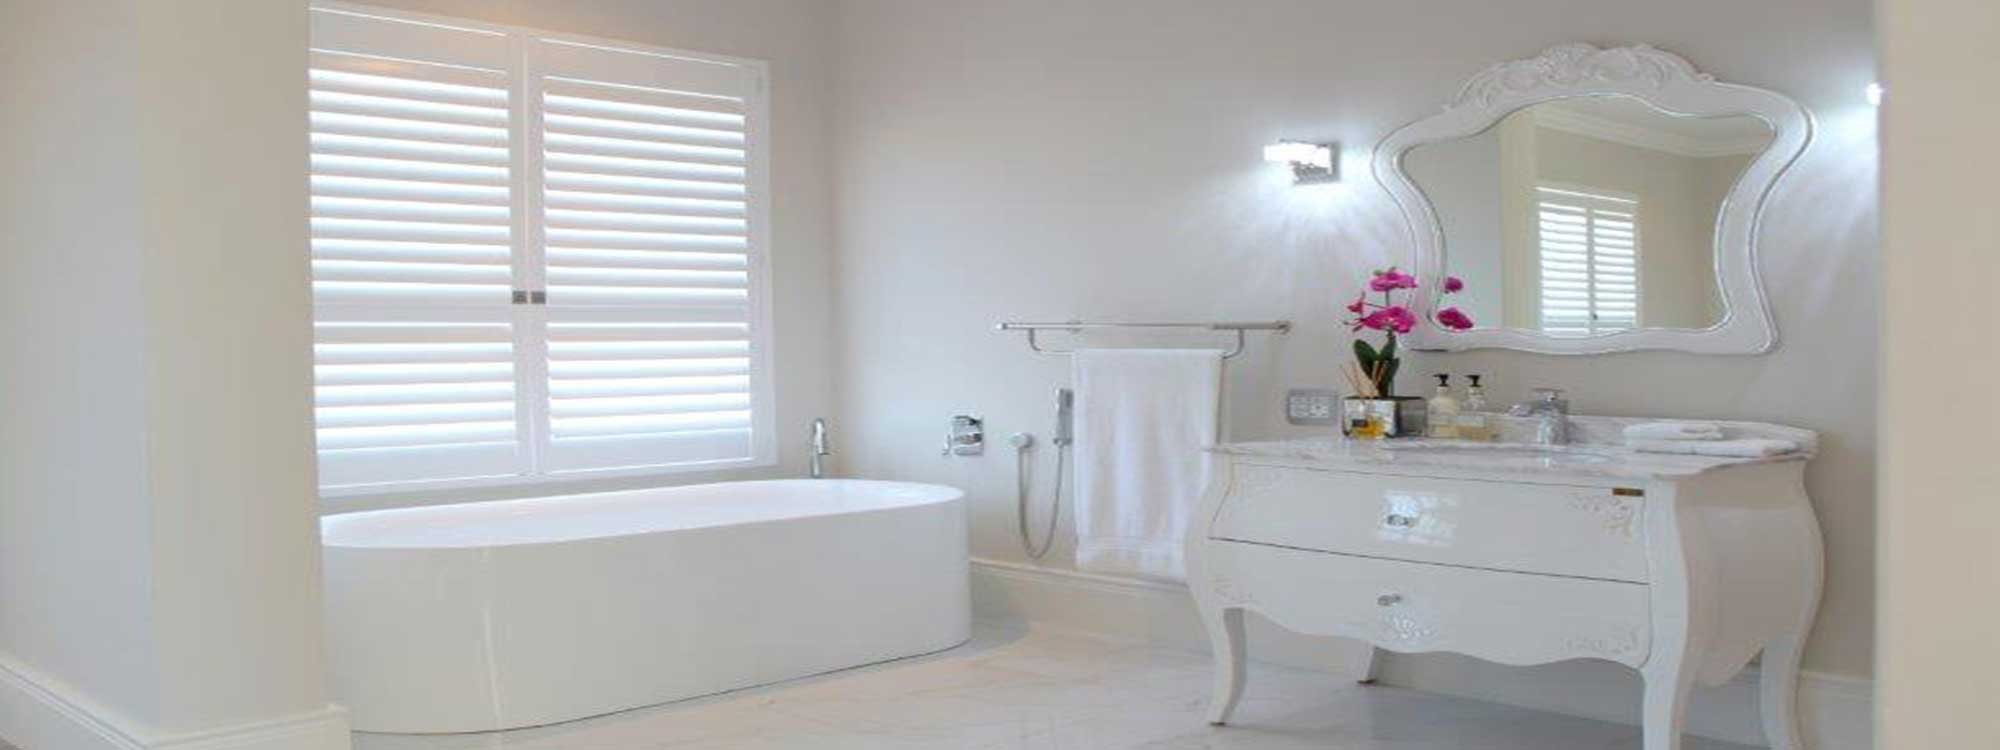 Decowood-shutters-bathroom-hinged-orchard